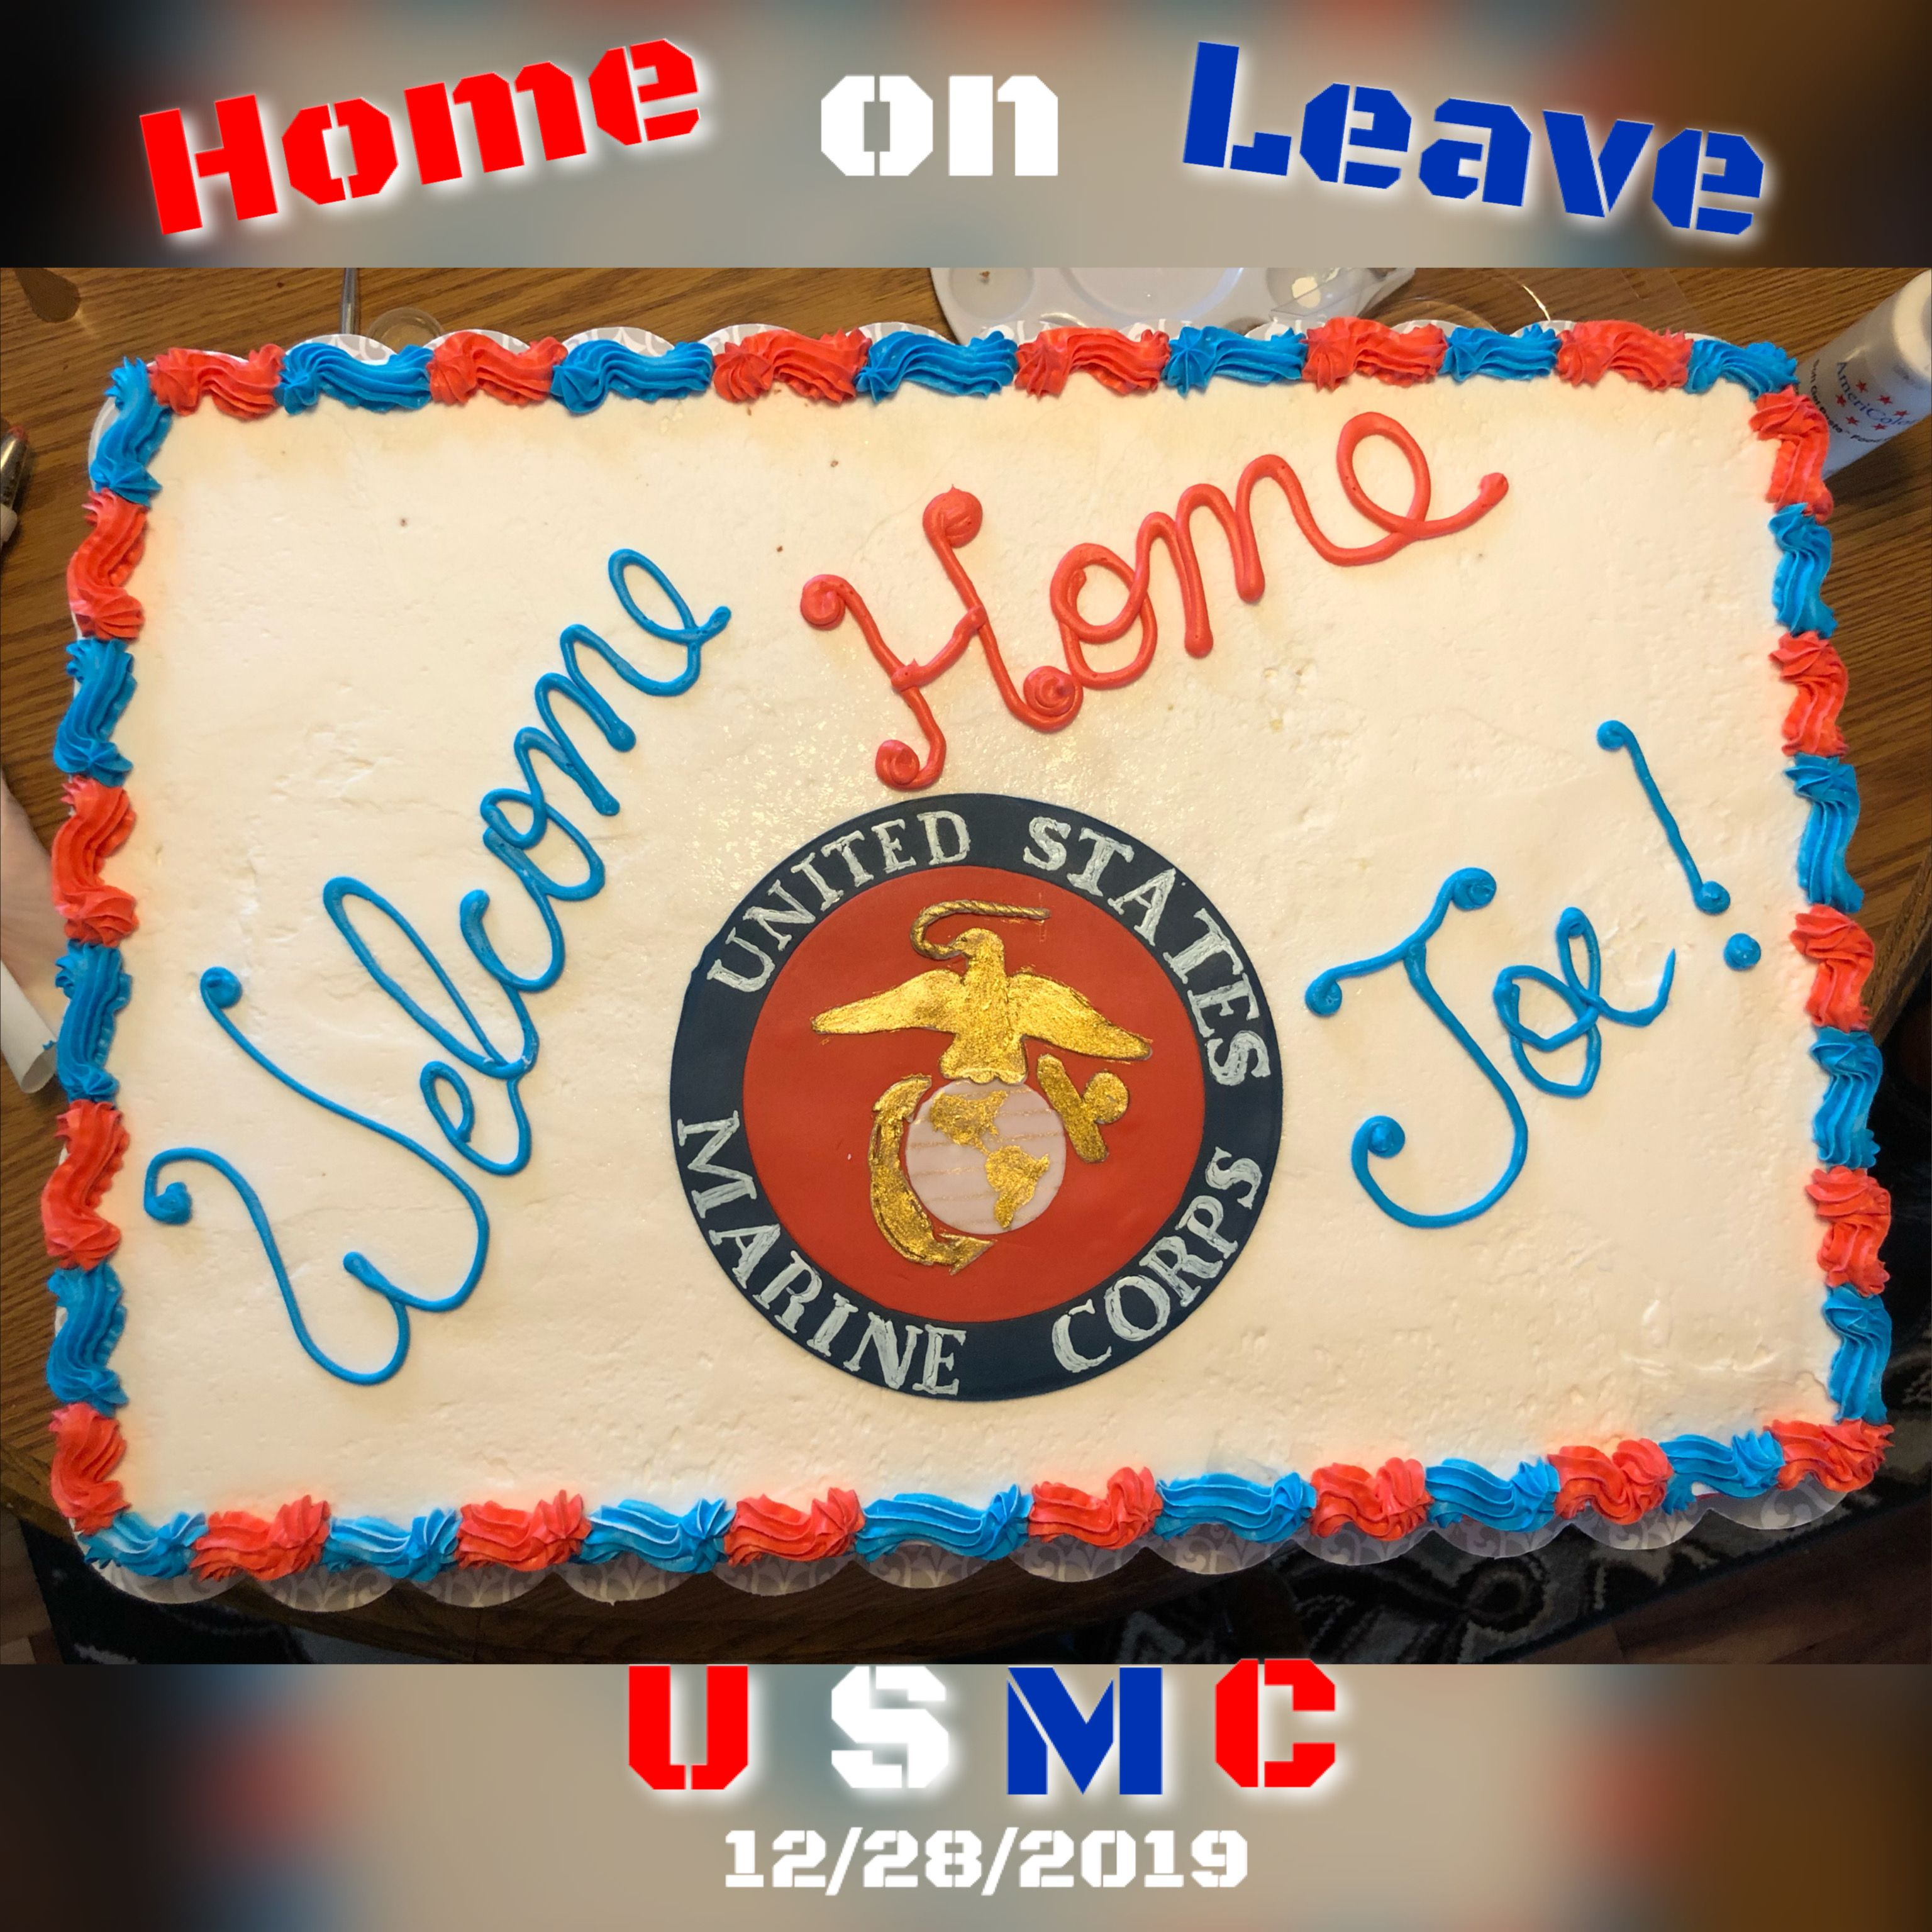 USMC Military Cake in 2020 home cakes, Military